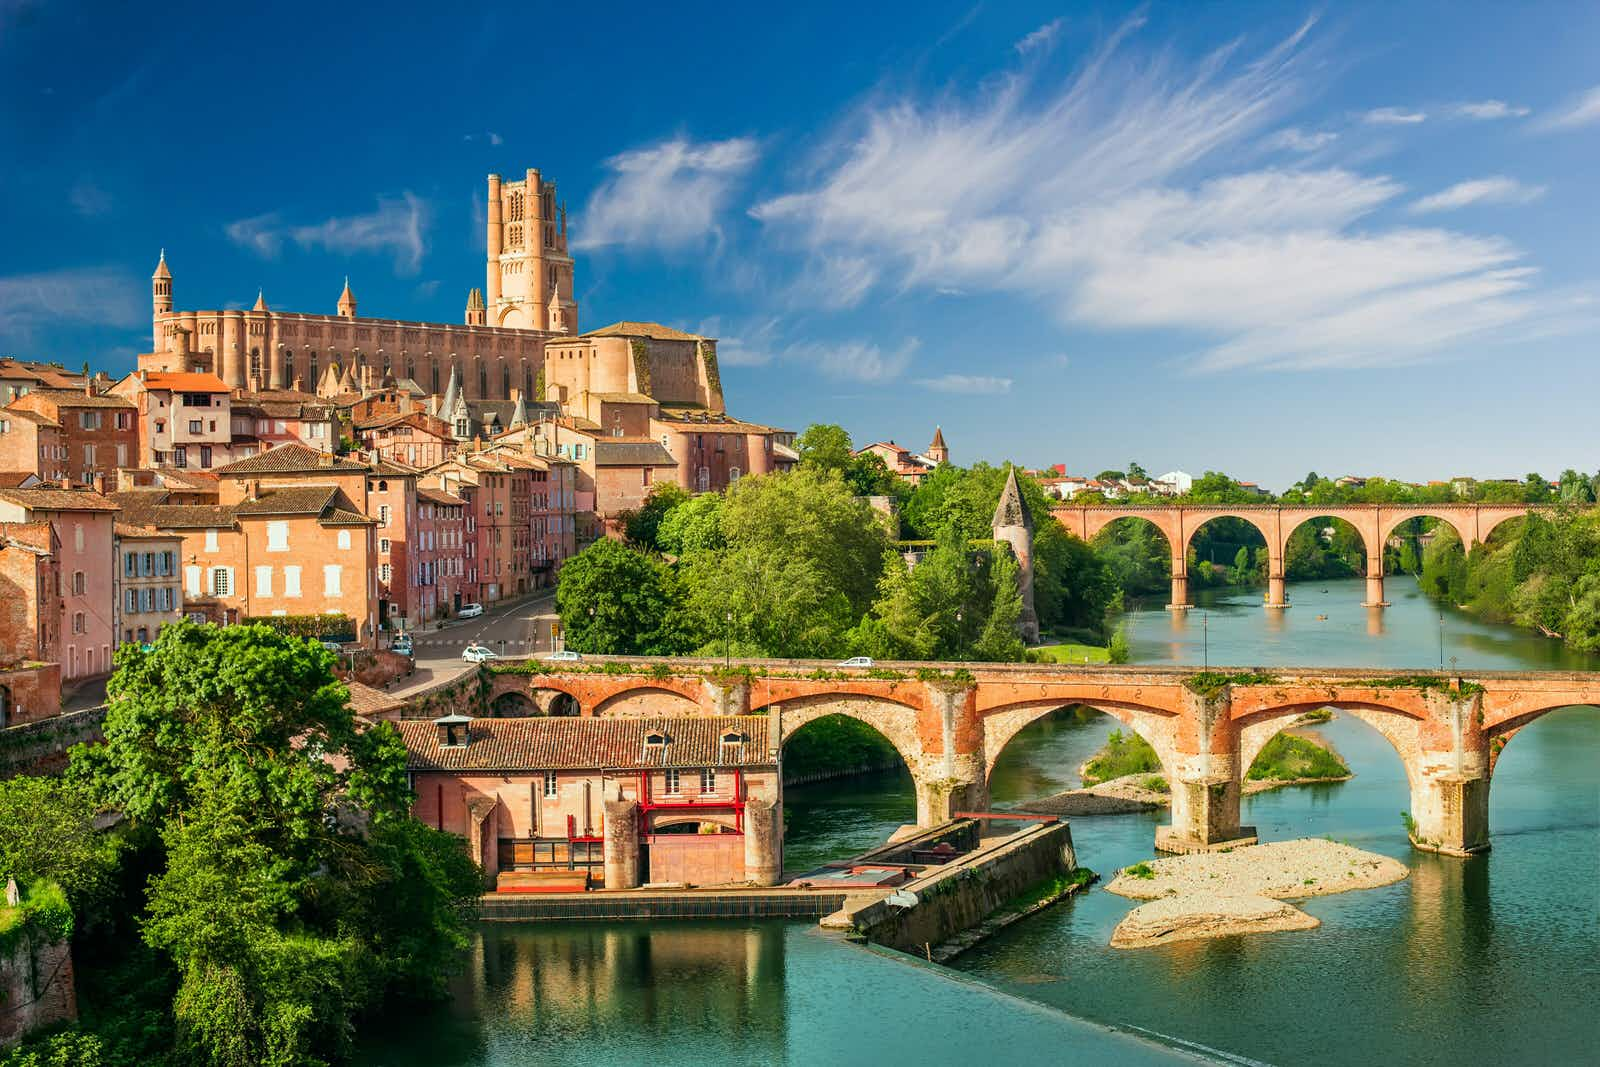 The town of Albi is dominated by the enormous redbrick Cathédrale Ste-Cécile, which sits on a hill above the rest of the town and the River Tarn